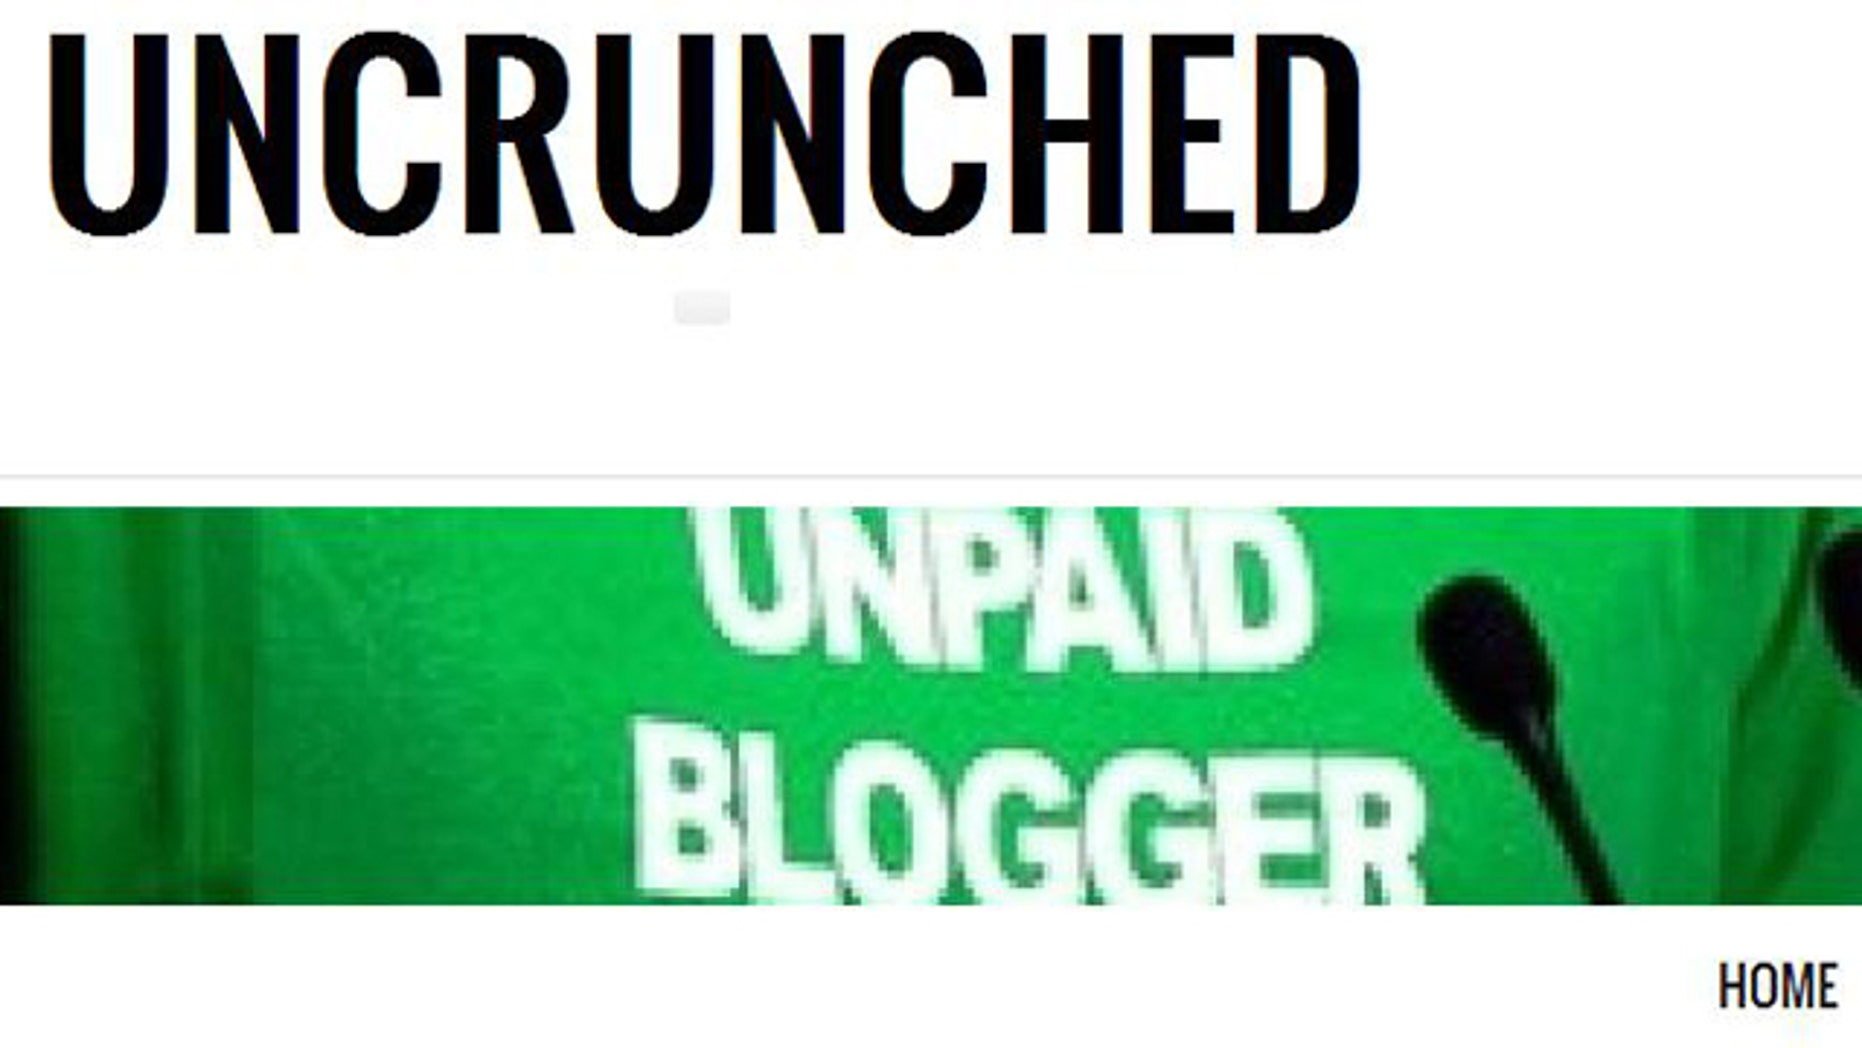 A screenshot of Michael Arrington's new website Uncrunched -- a reference to his former blog TechCrunch, which he founded in 2005.